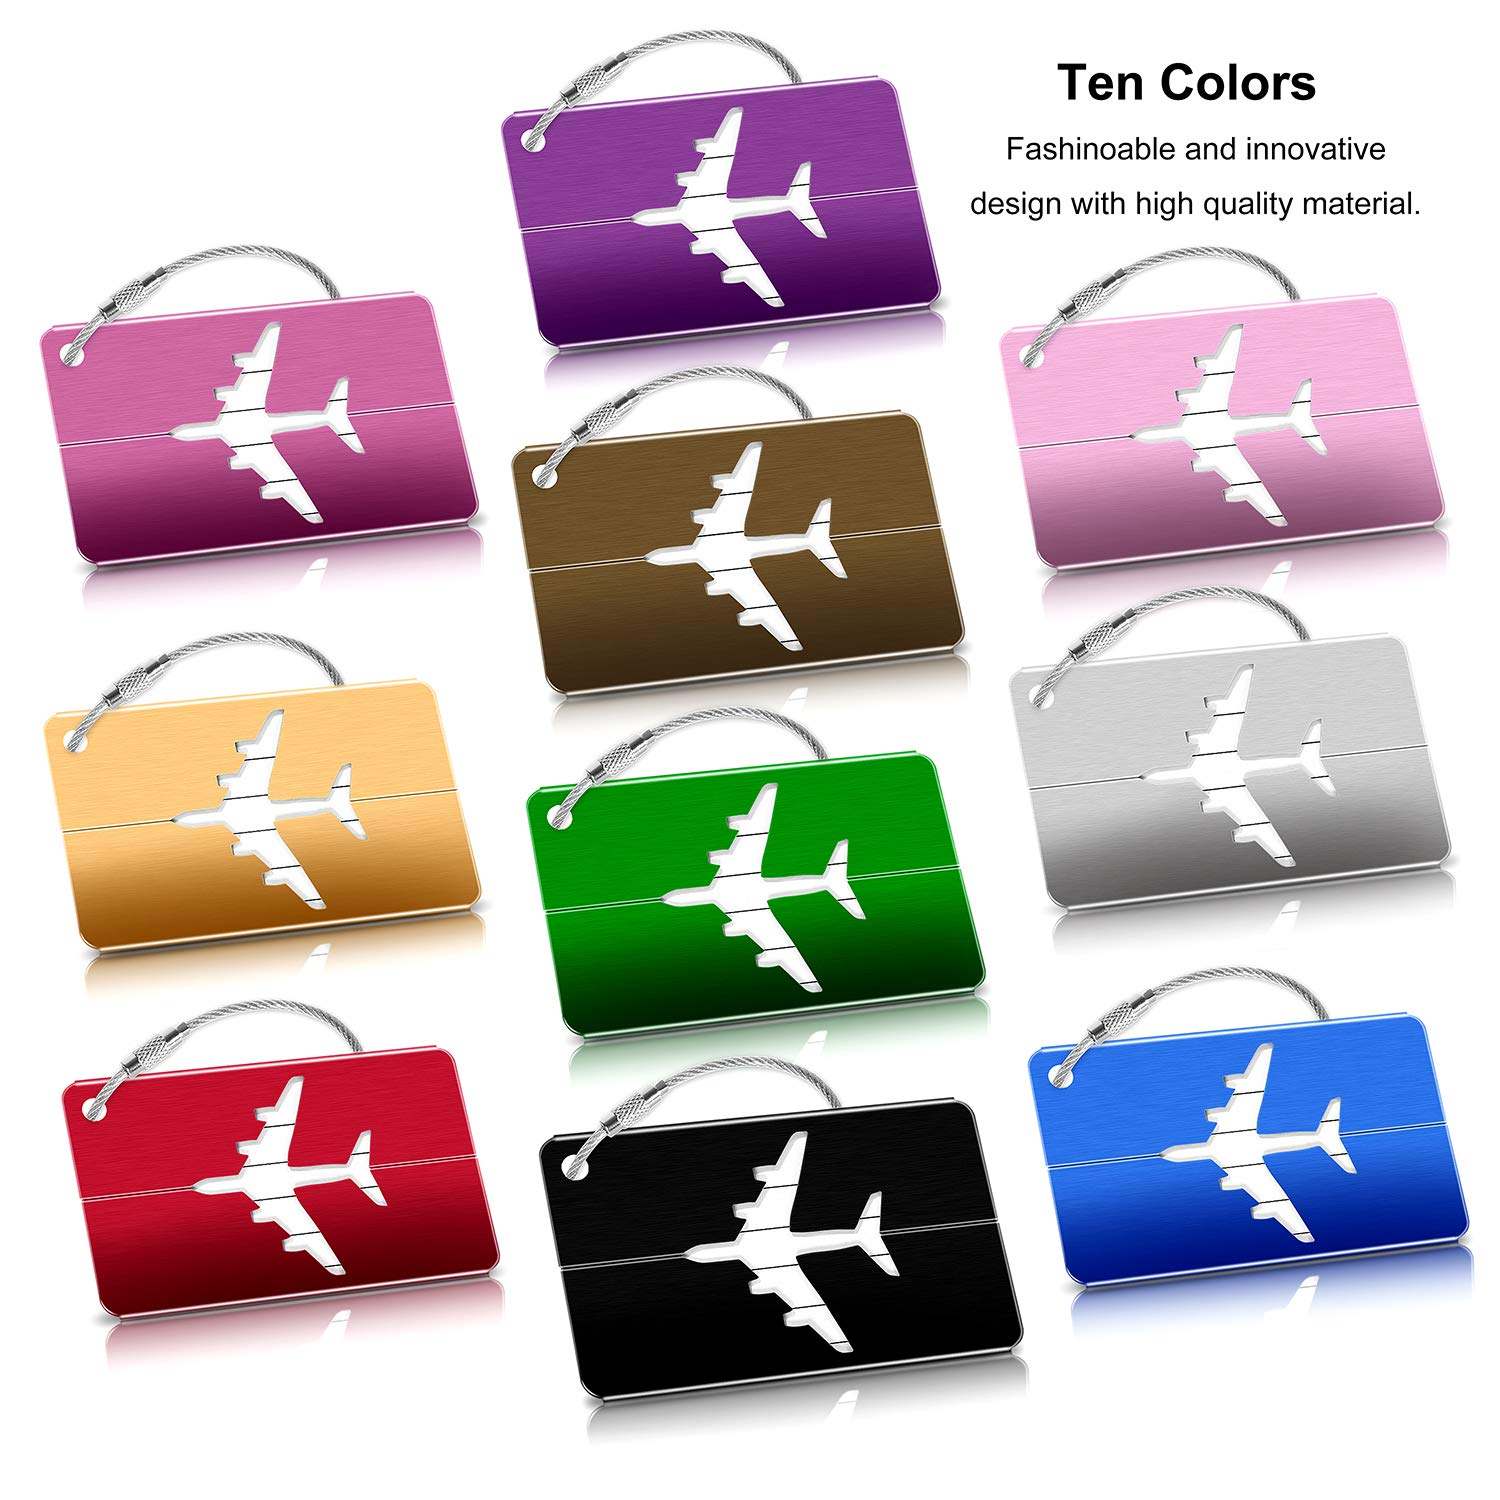 FANXIER Luggage Tags 10 Packs Metal Suitcase Labels Aluminium Baggage Tags Handbag Tag Airplane Pattern Name Address Holder for Travel Bussiness Trip